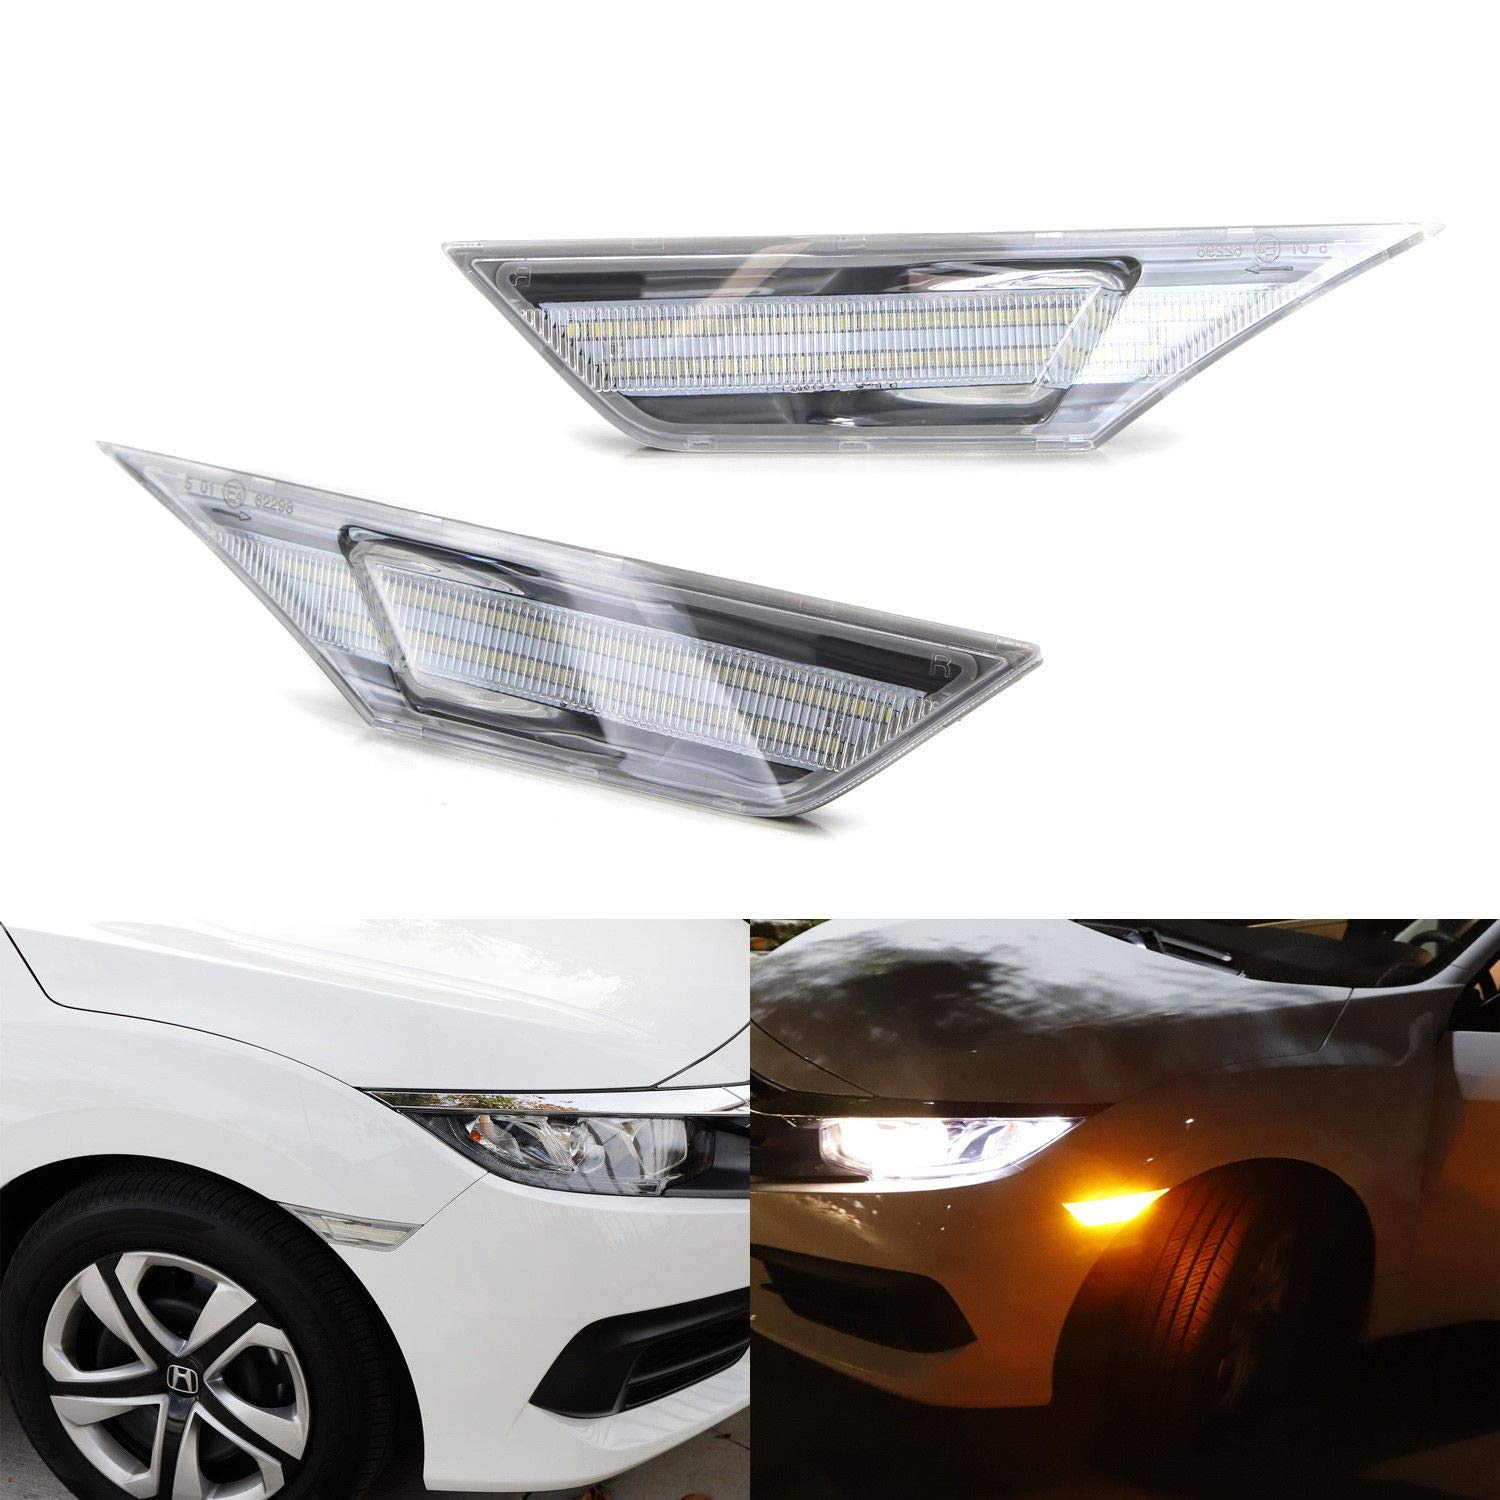 iJDMTOY Clear Lens Amber Full LED Front Side Marker Light Kit For 2016-up Honda Civic, Powered by 90-SMD LED, Replace OEM Sidemarker Lamps iJDMTOY Auto Accessories Change Left/Right Original Lamp Assembly